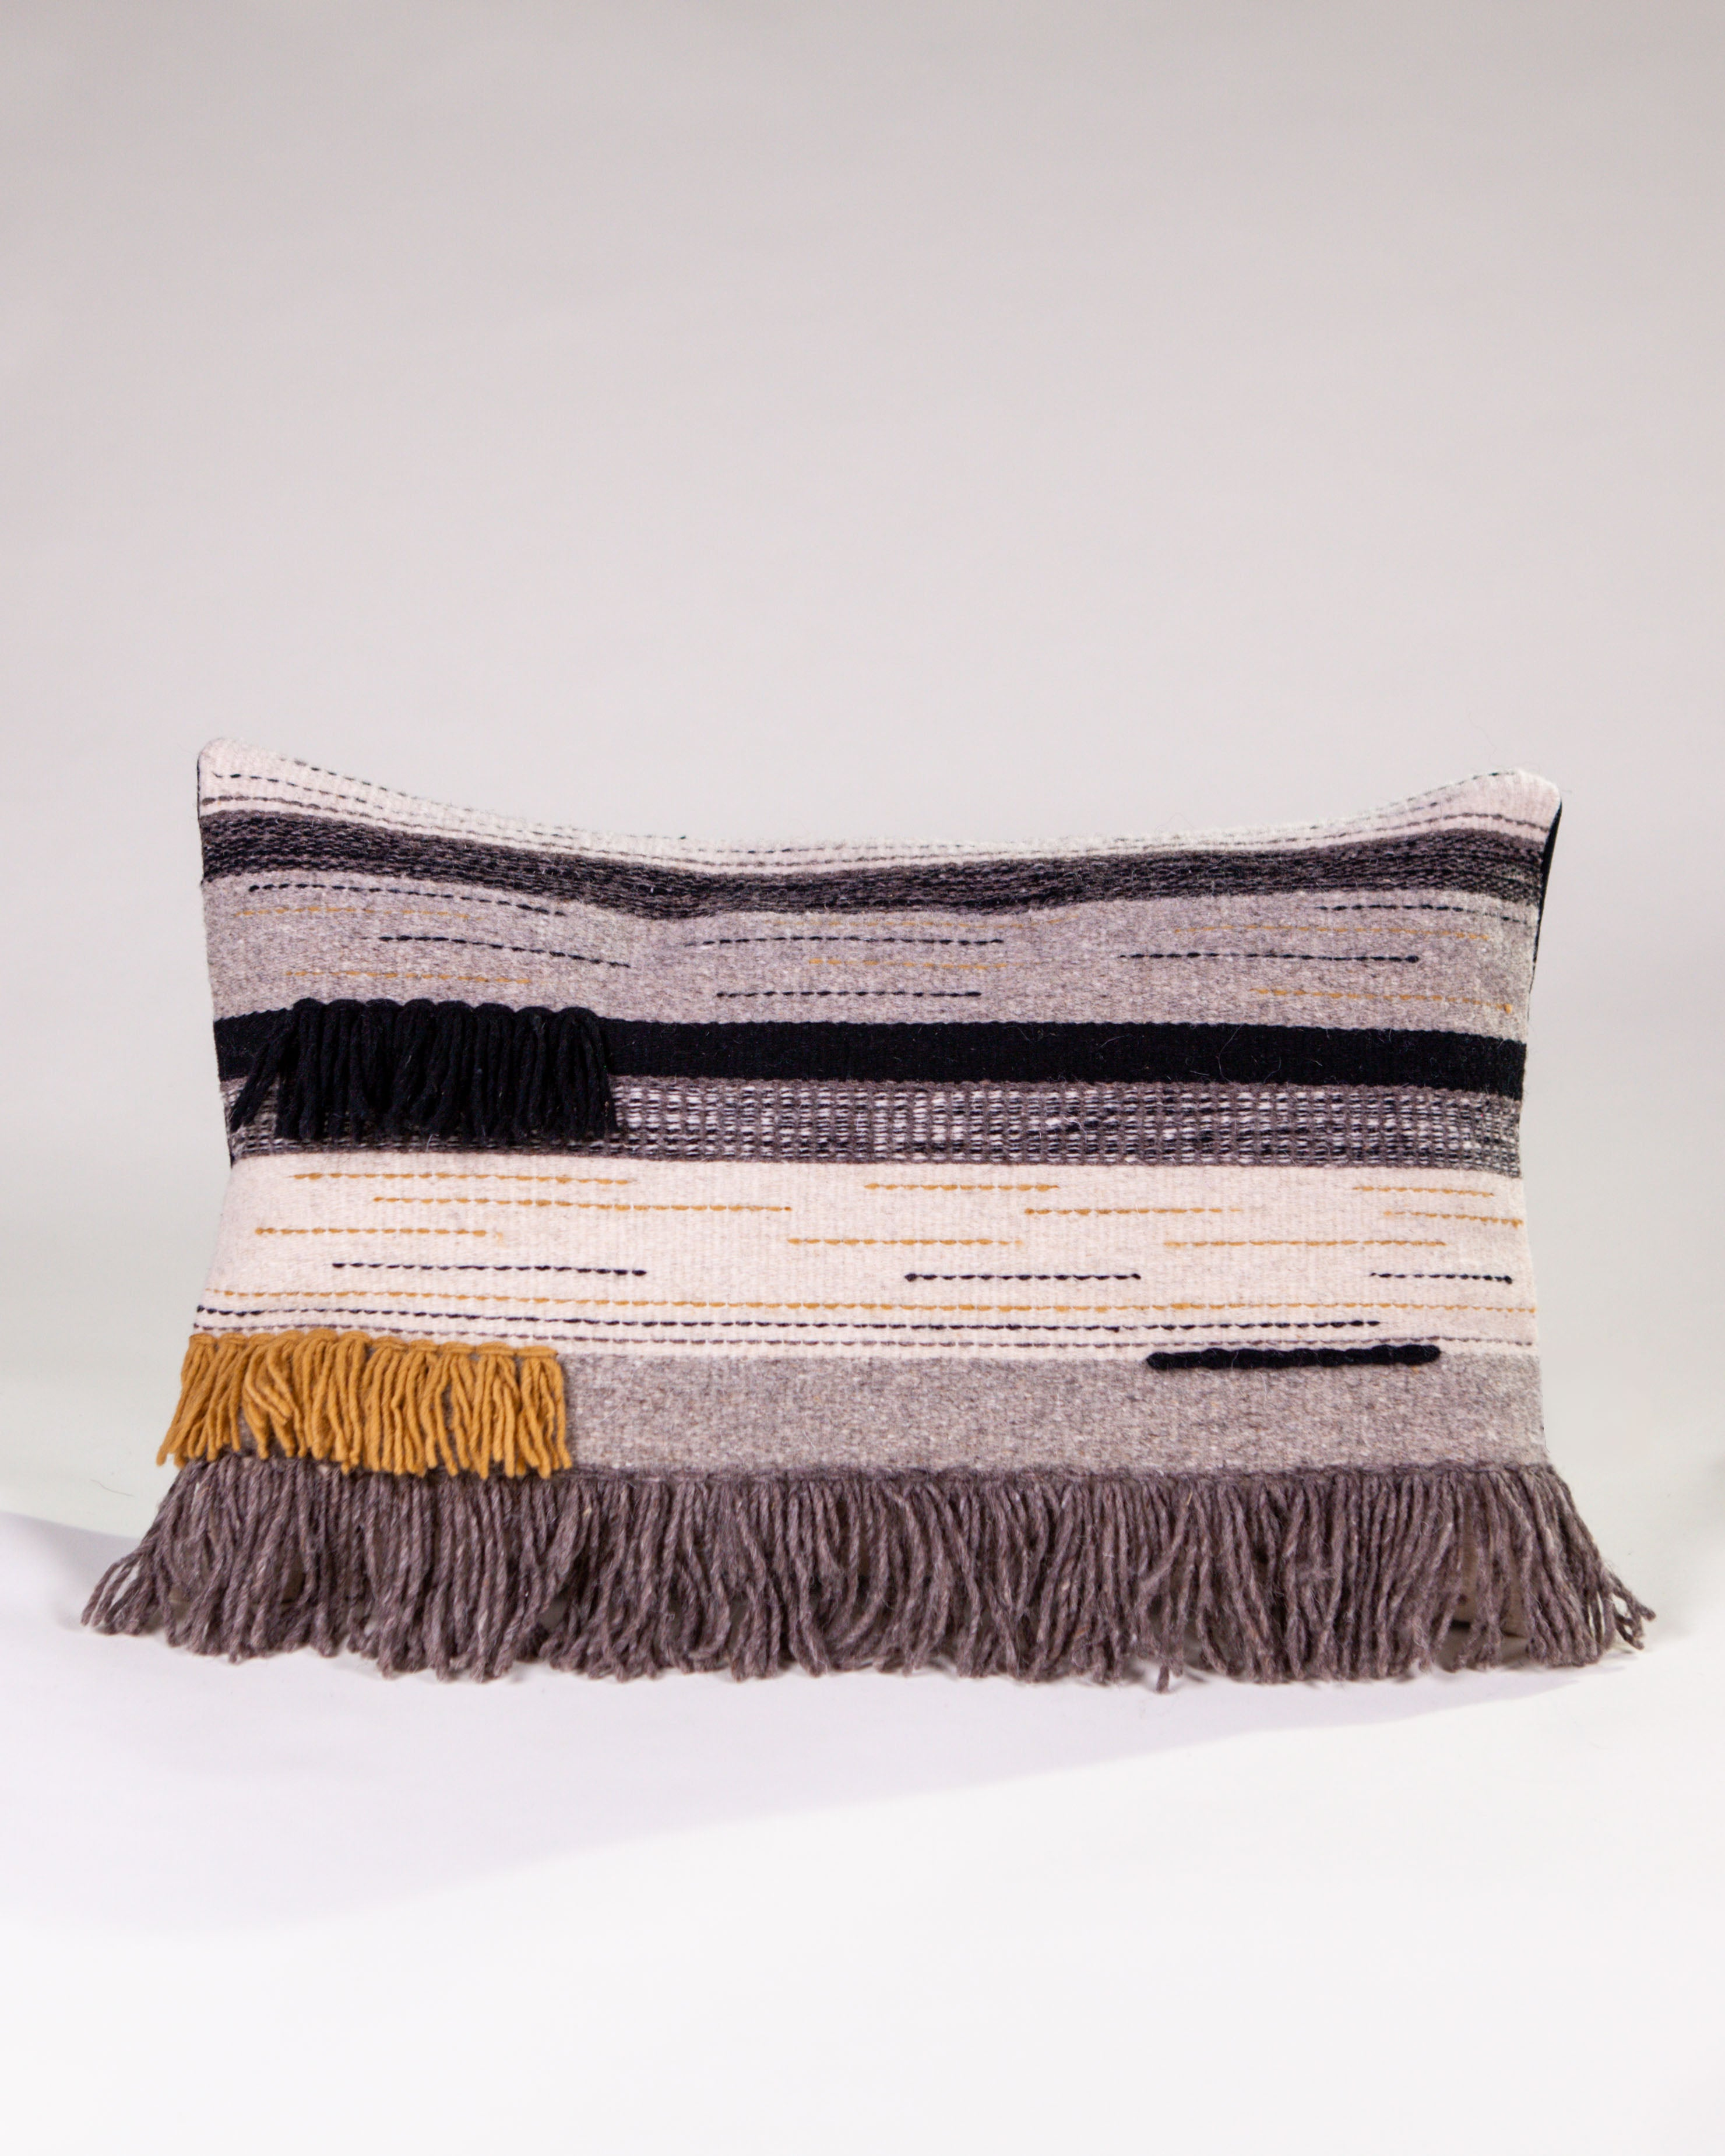 Handwoven wool pillow grey black yellow ochre with fringe